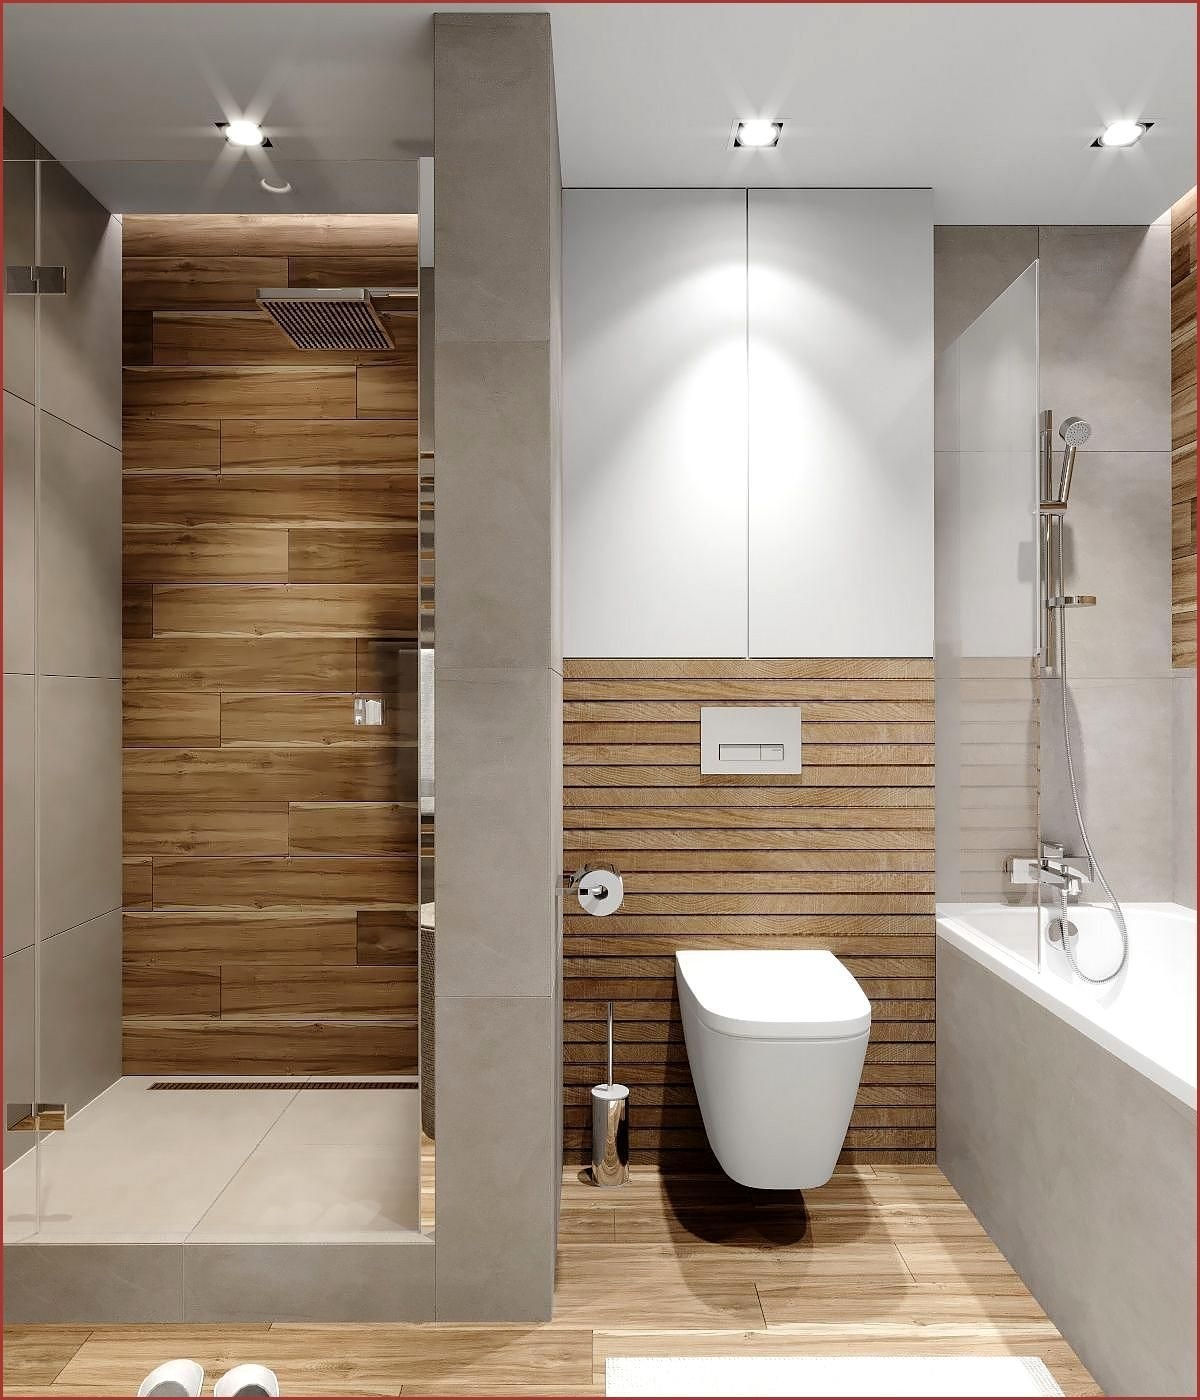 A B Studio Design Modernbathrooms Smallbathrooms Bathrooms Bathrooms Bathrooms Design Modernbathr In 2020 Badezimmer Badezimmer Klein Kleines Badezimmer